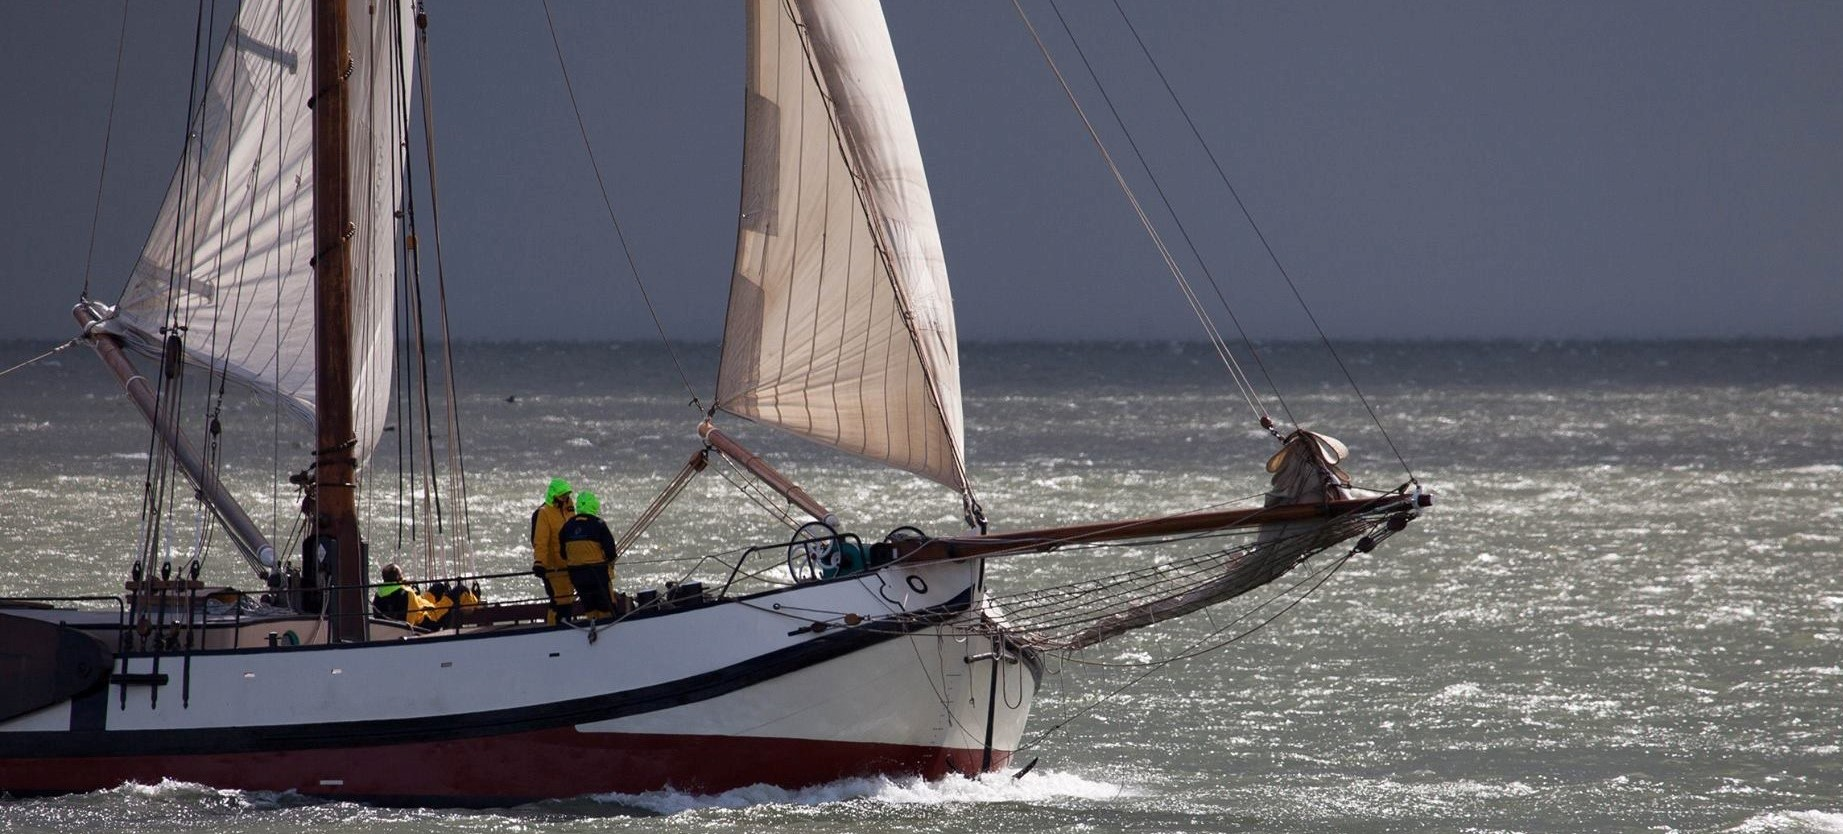 Sailing Holland Eendracht